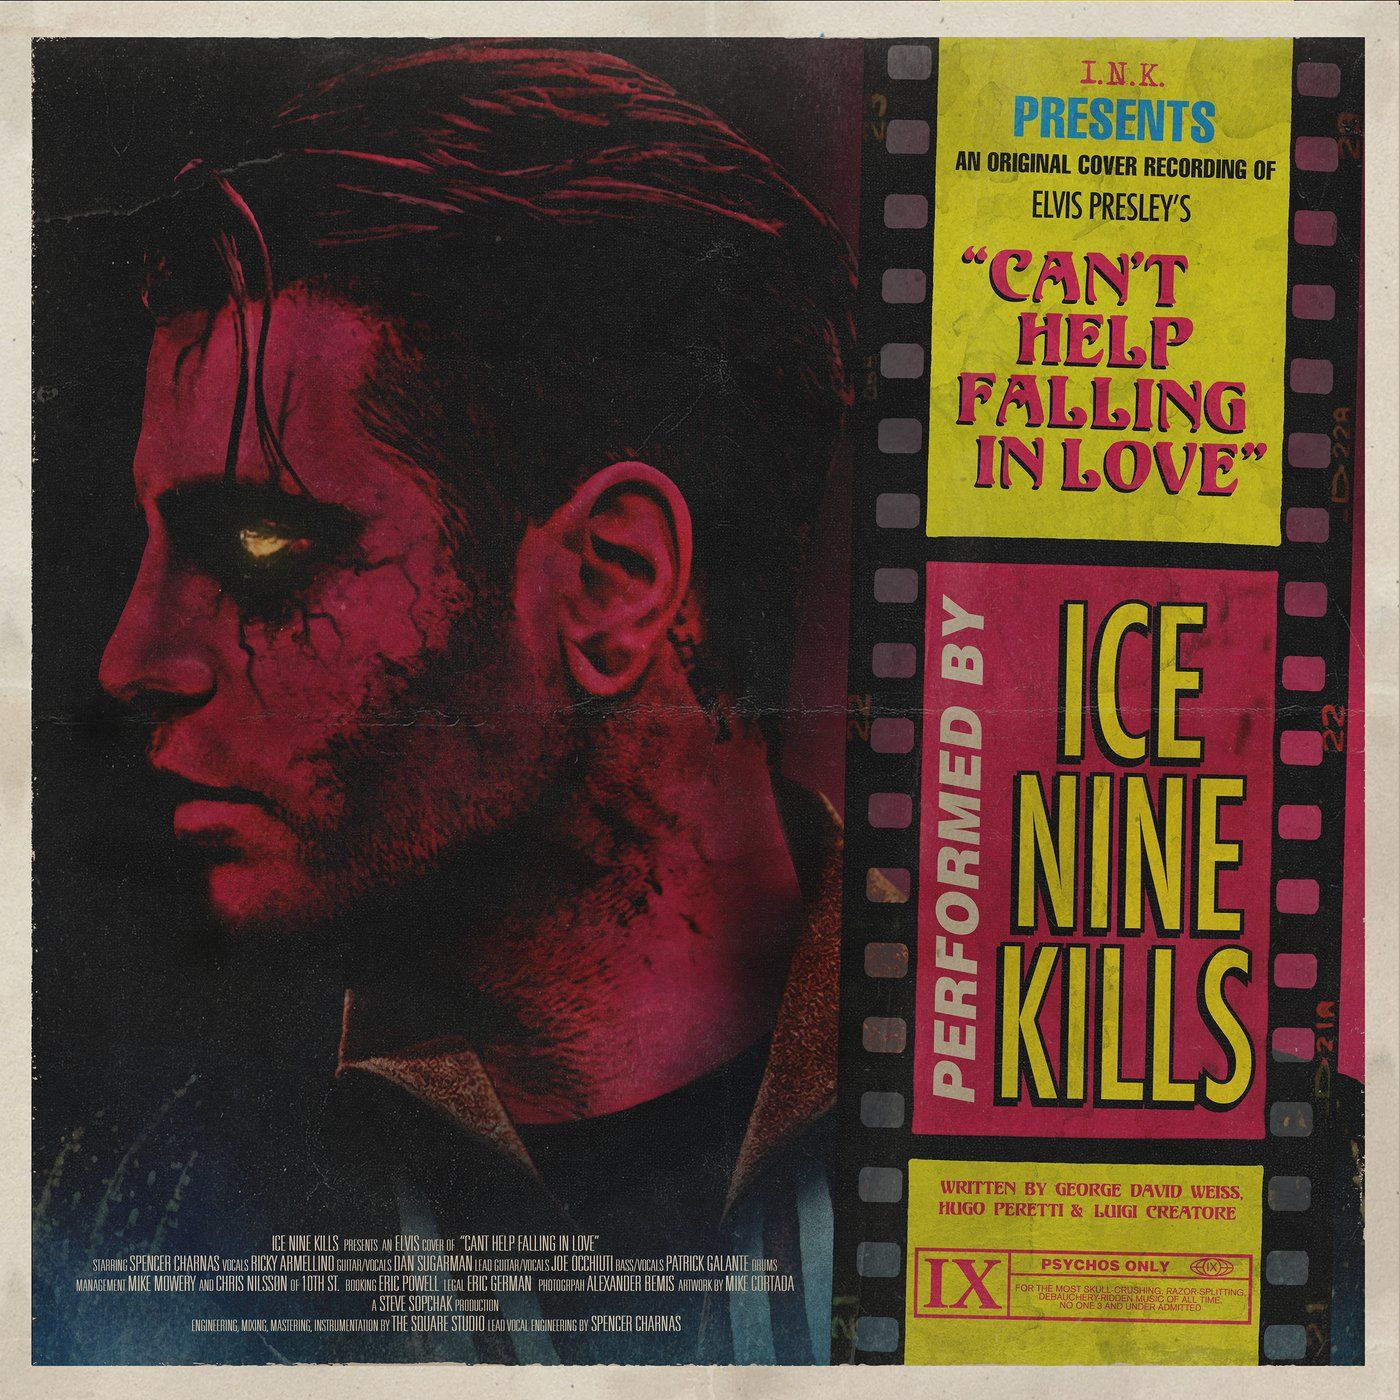 Ice Nine Kills - Can't Help Falling In Love [single] (2021)